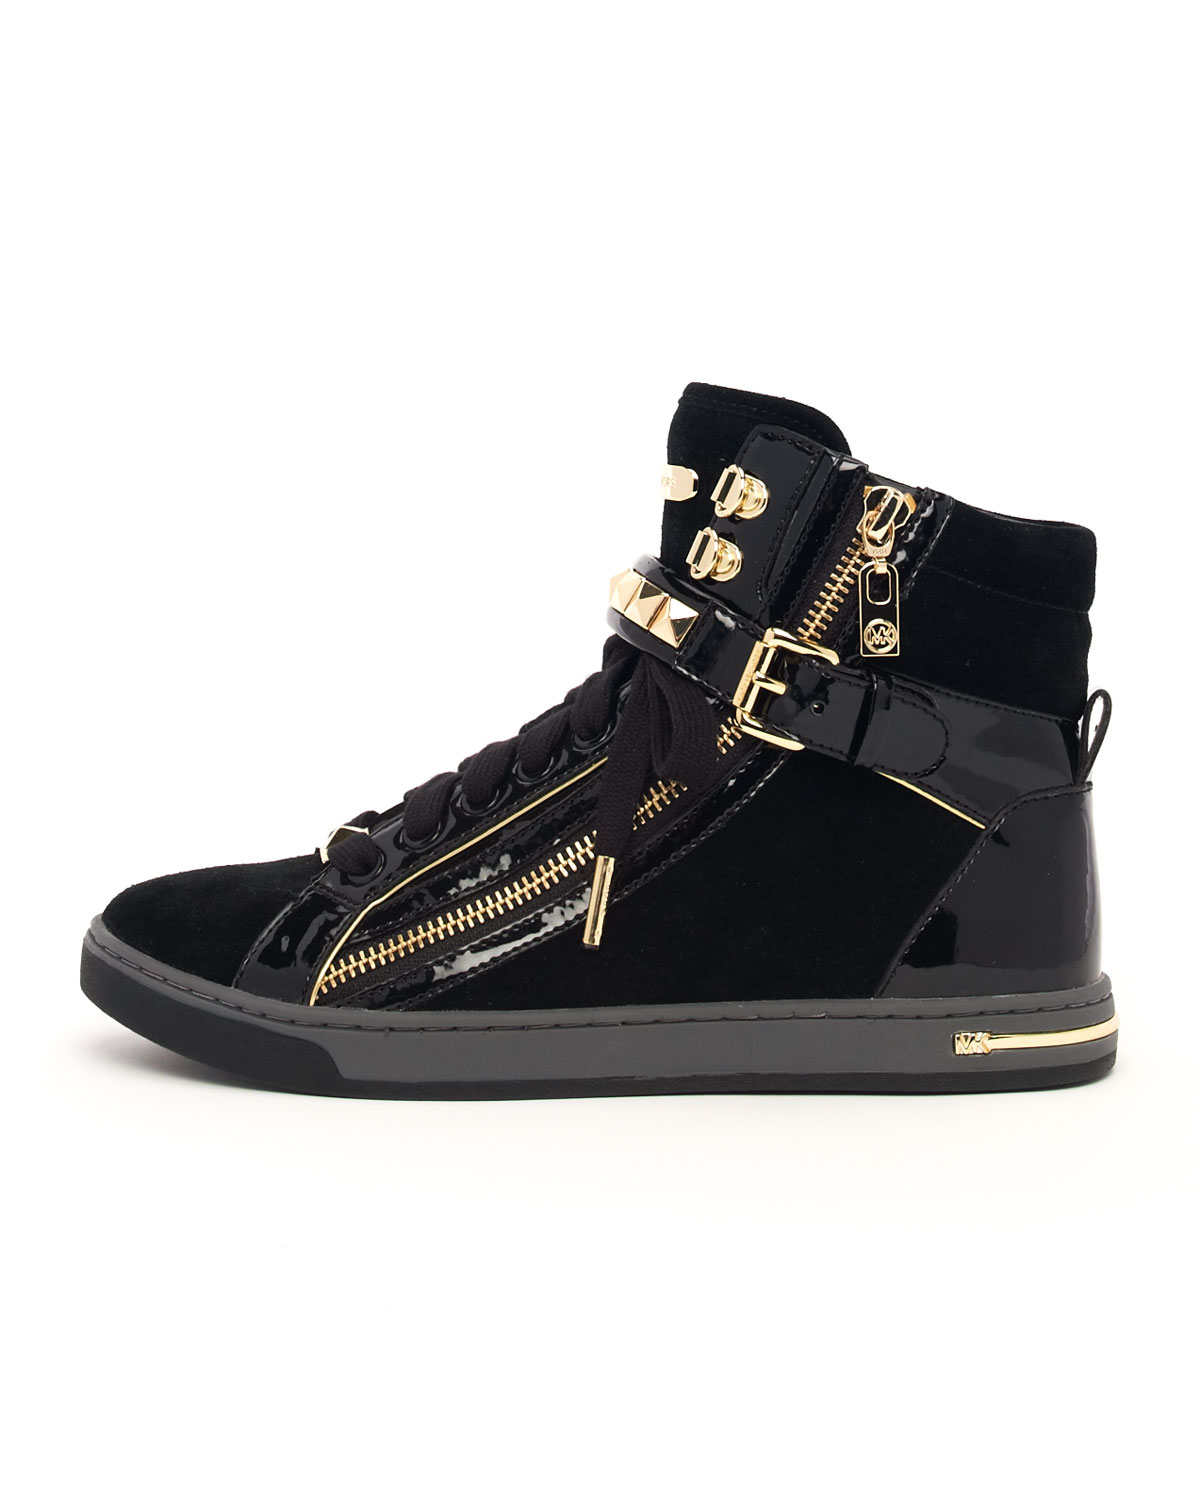 > discontinued shoes michael kors deals for discontinued shoes michael kors on Sale + Filters and Sorting. On Sale. Michael By Michael Kors Size Us Women's Shoes Black Leather - $ Free Shipping. See Deal%. Michael Kors For Men Men's Cologne - Eau de Toilette, Multicolor.